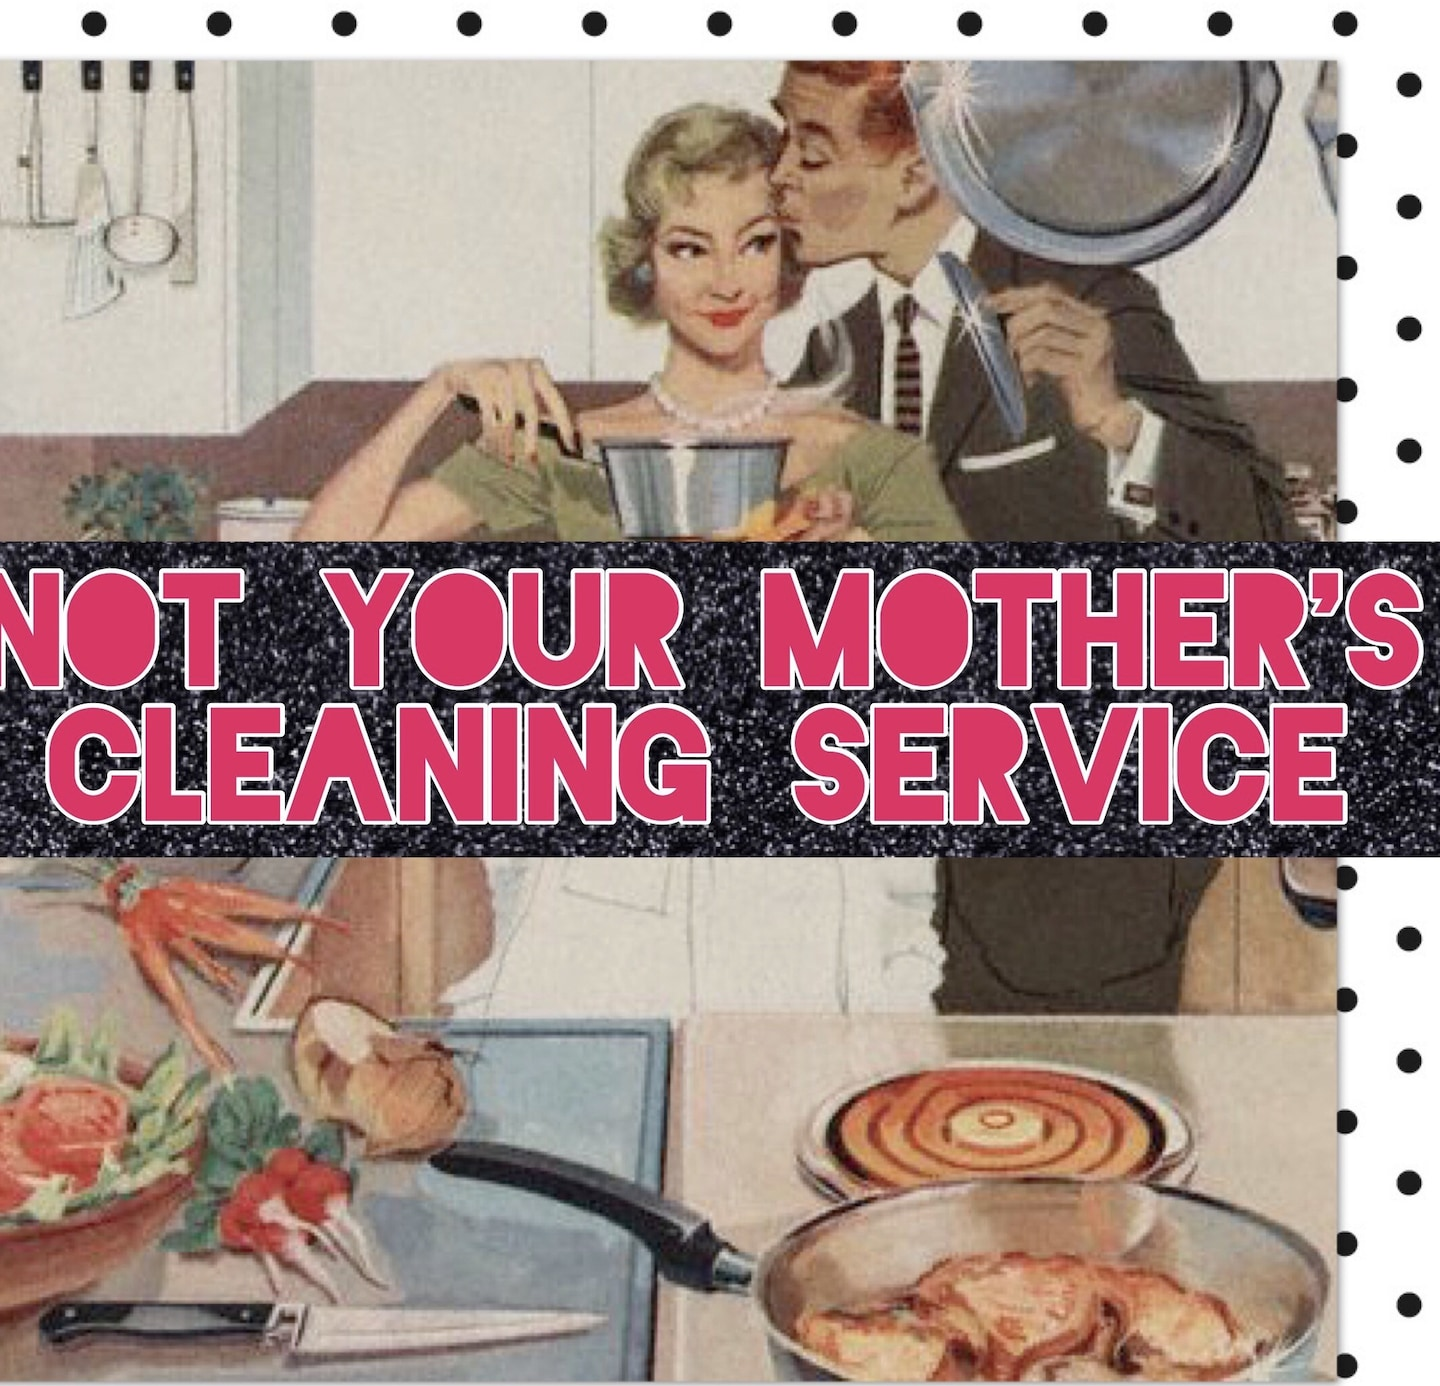 Not Your Mother's Cleaning Service